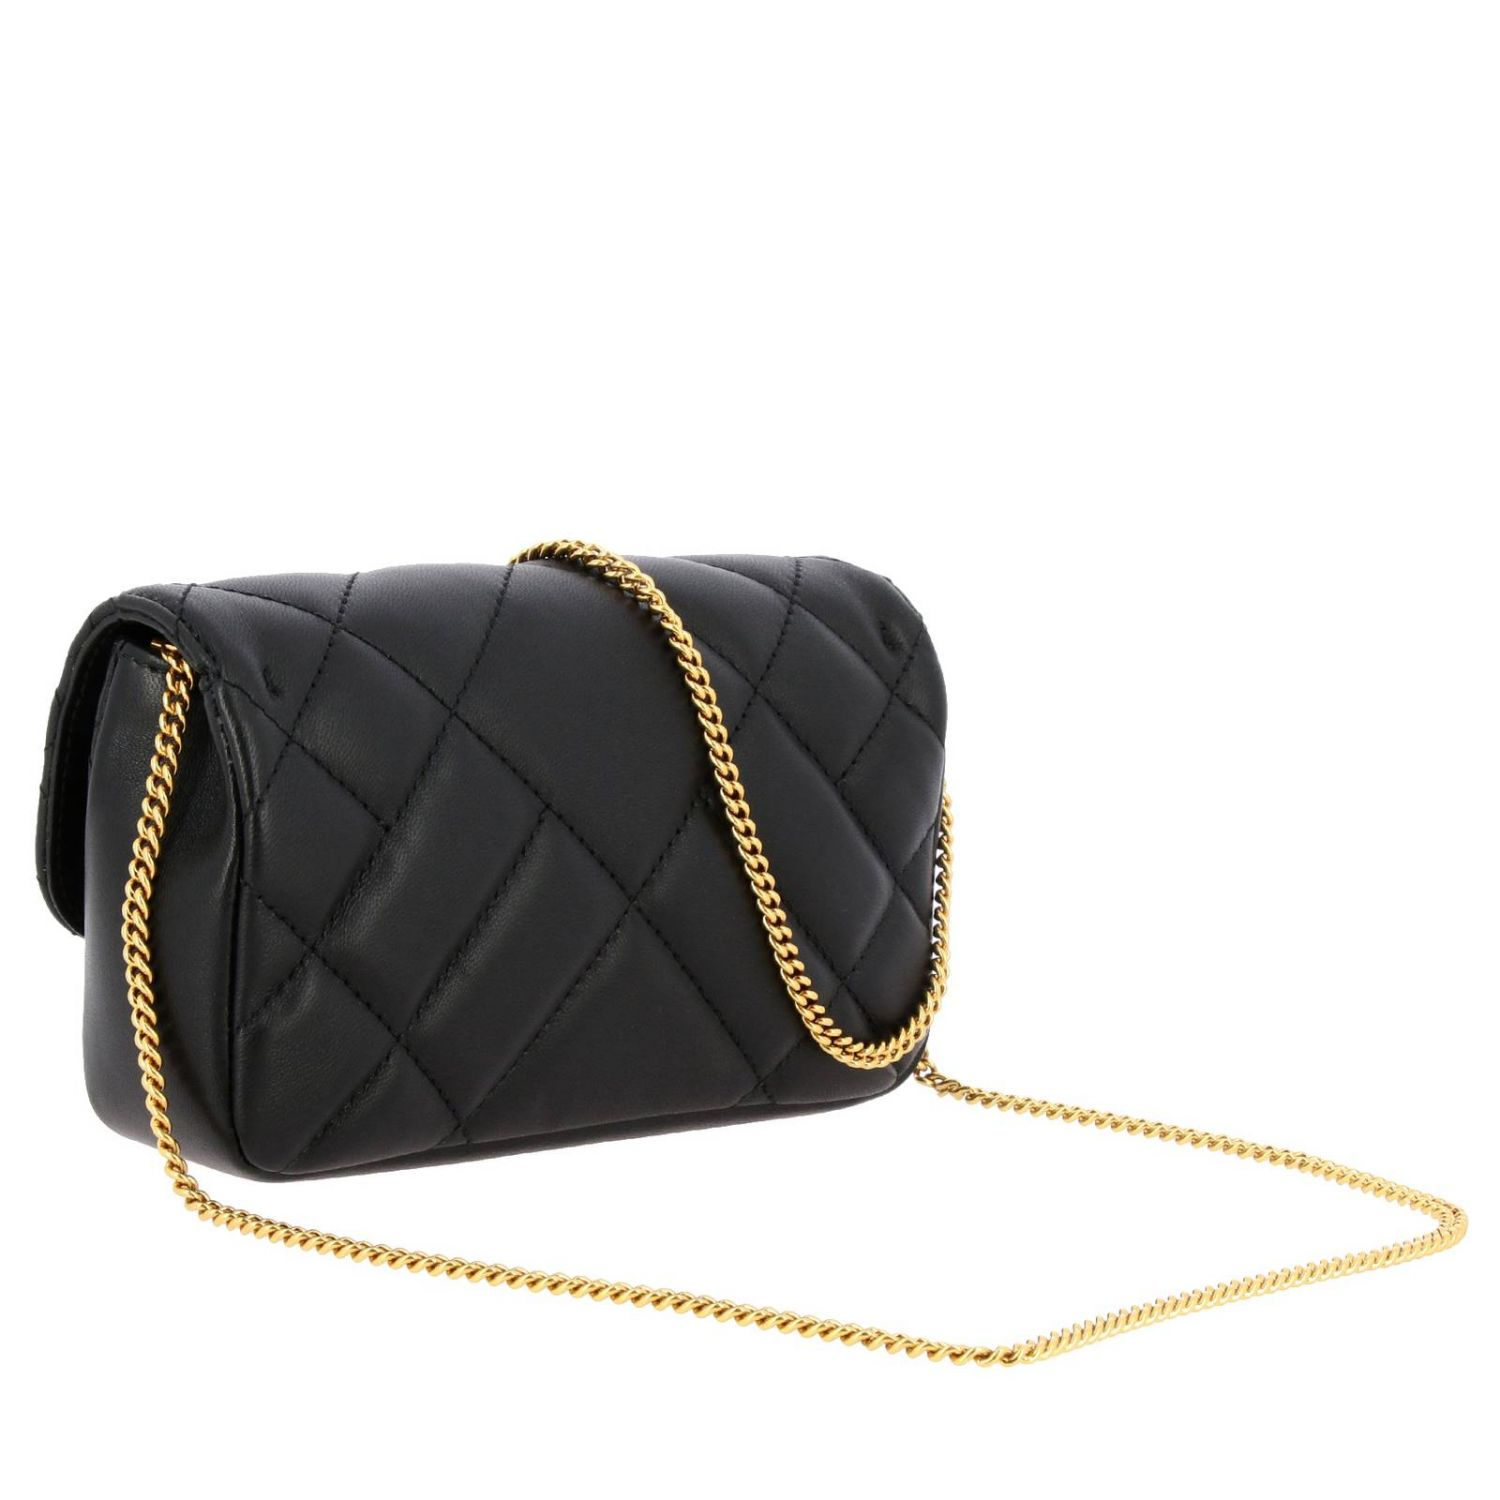 Versace shoulder bag in quilted leather with Medusa head gold 3